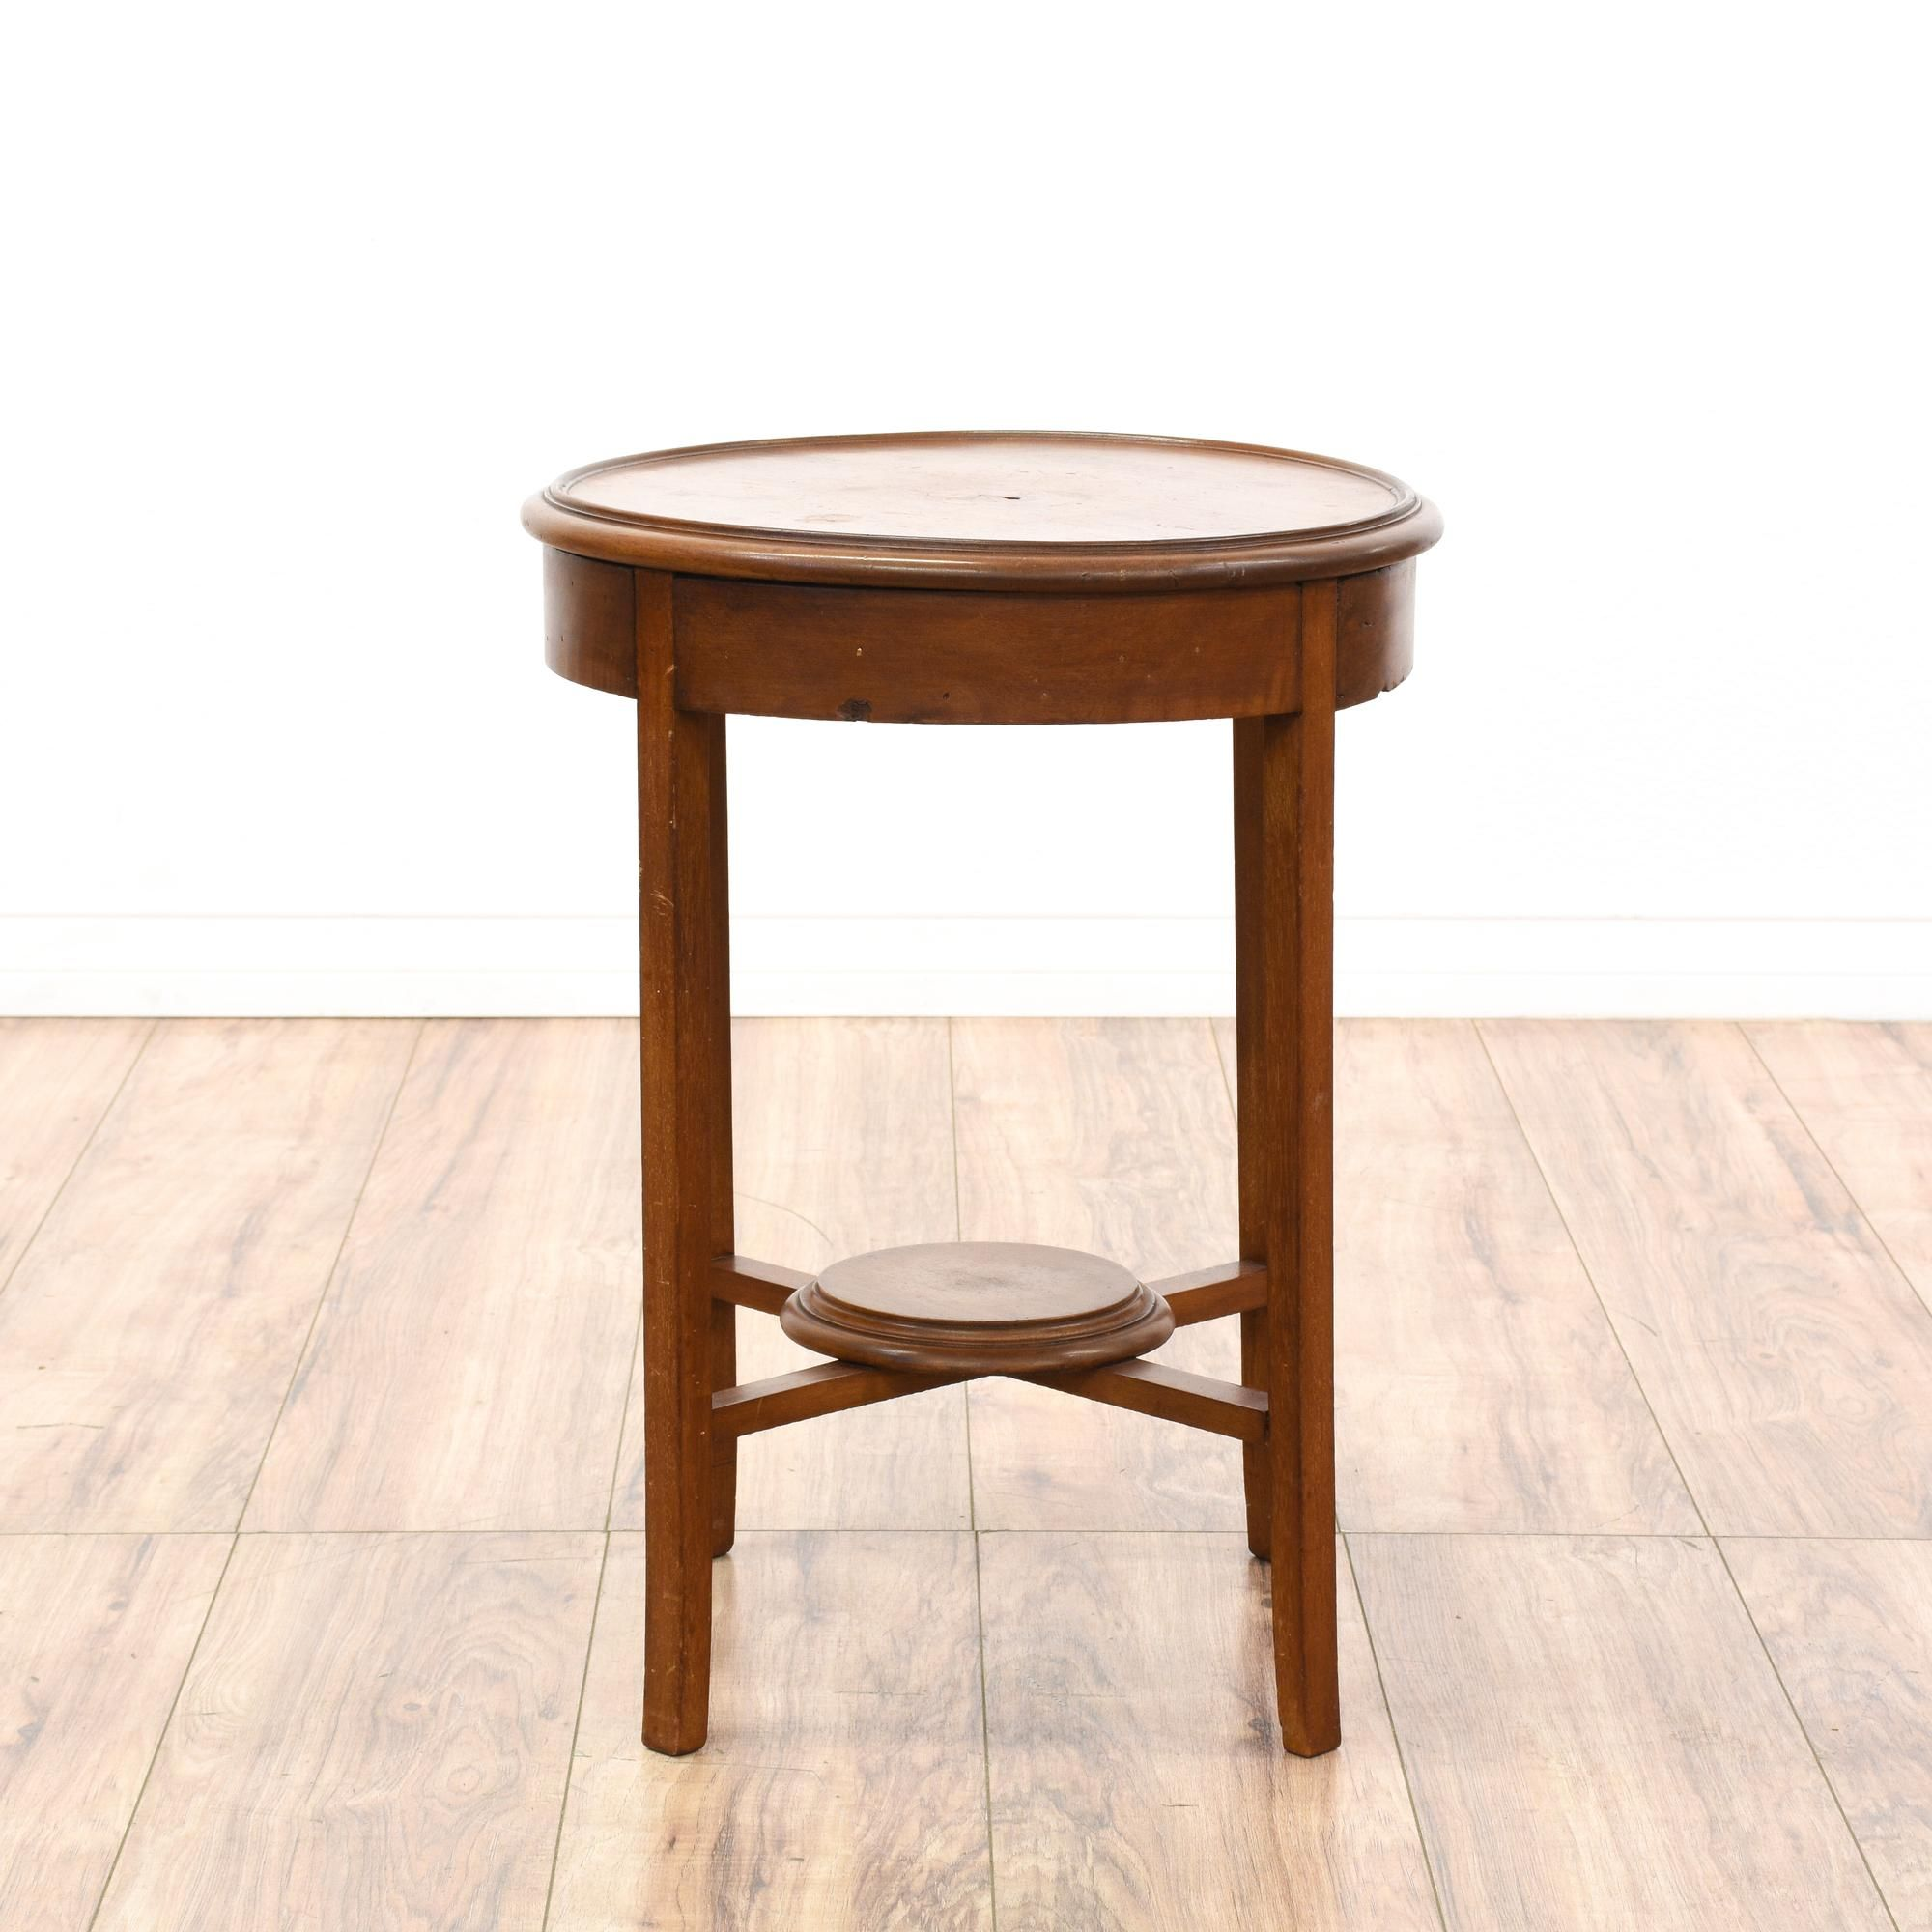 This small round side table is featured in a solid wood